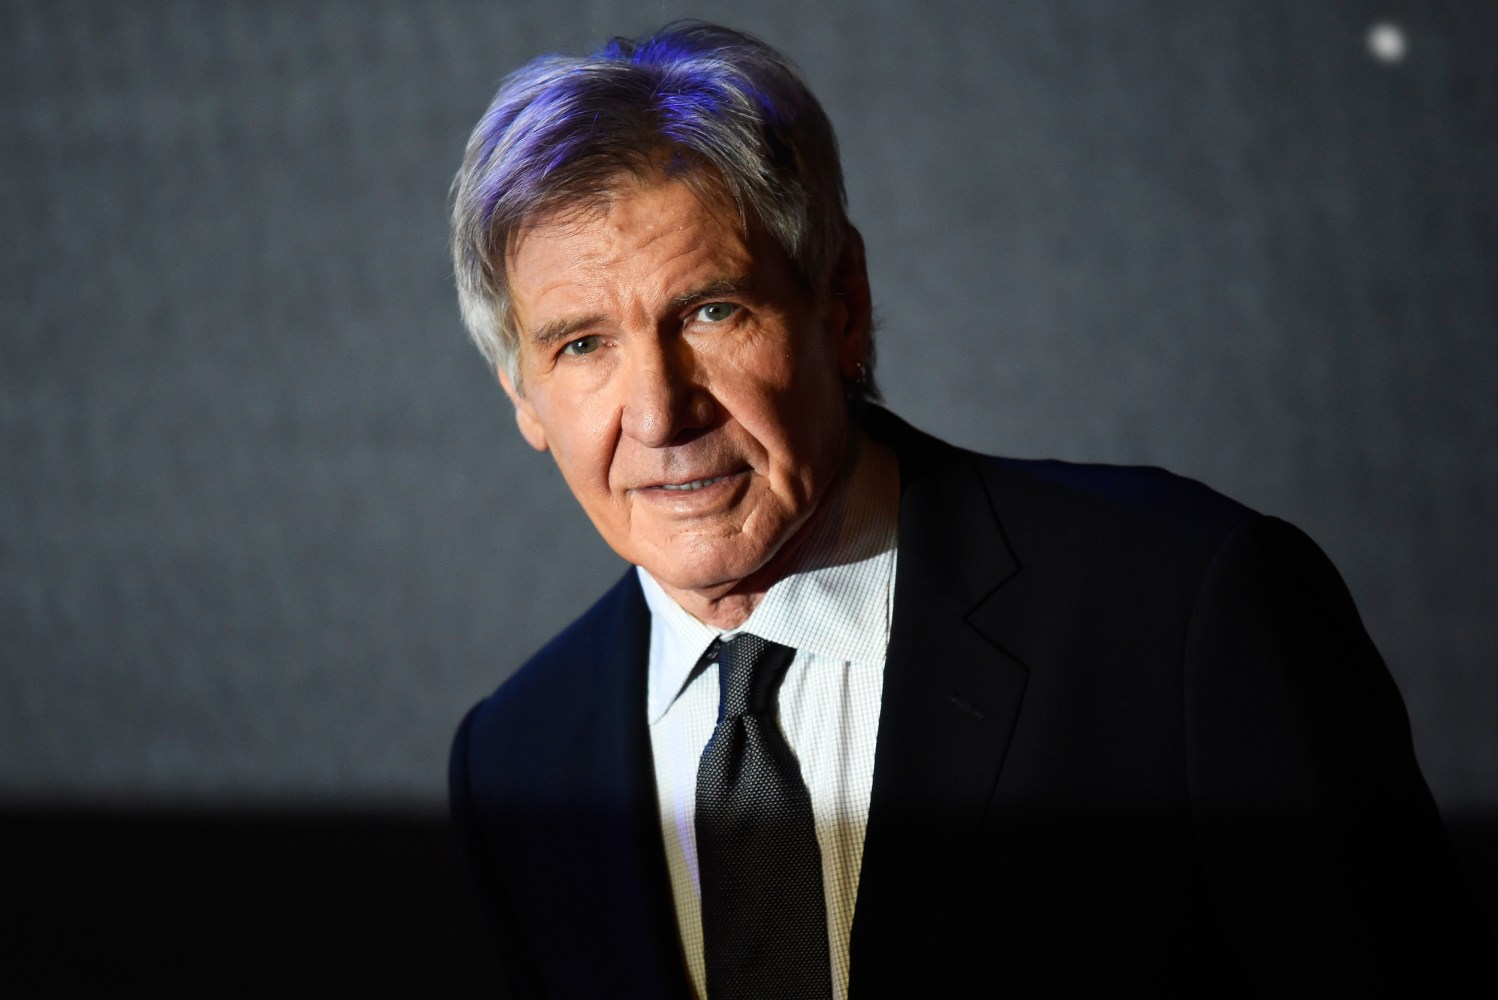 Harrison Ford Involved In Passenger Plane Incident at OC Airport